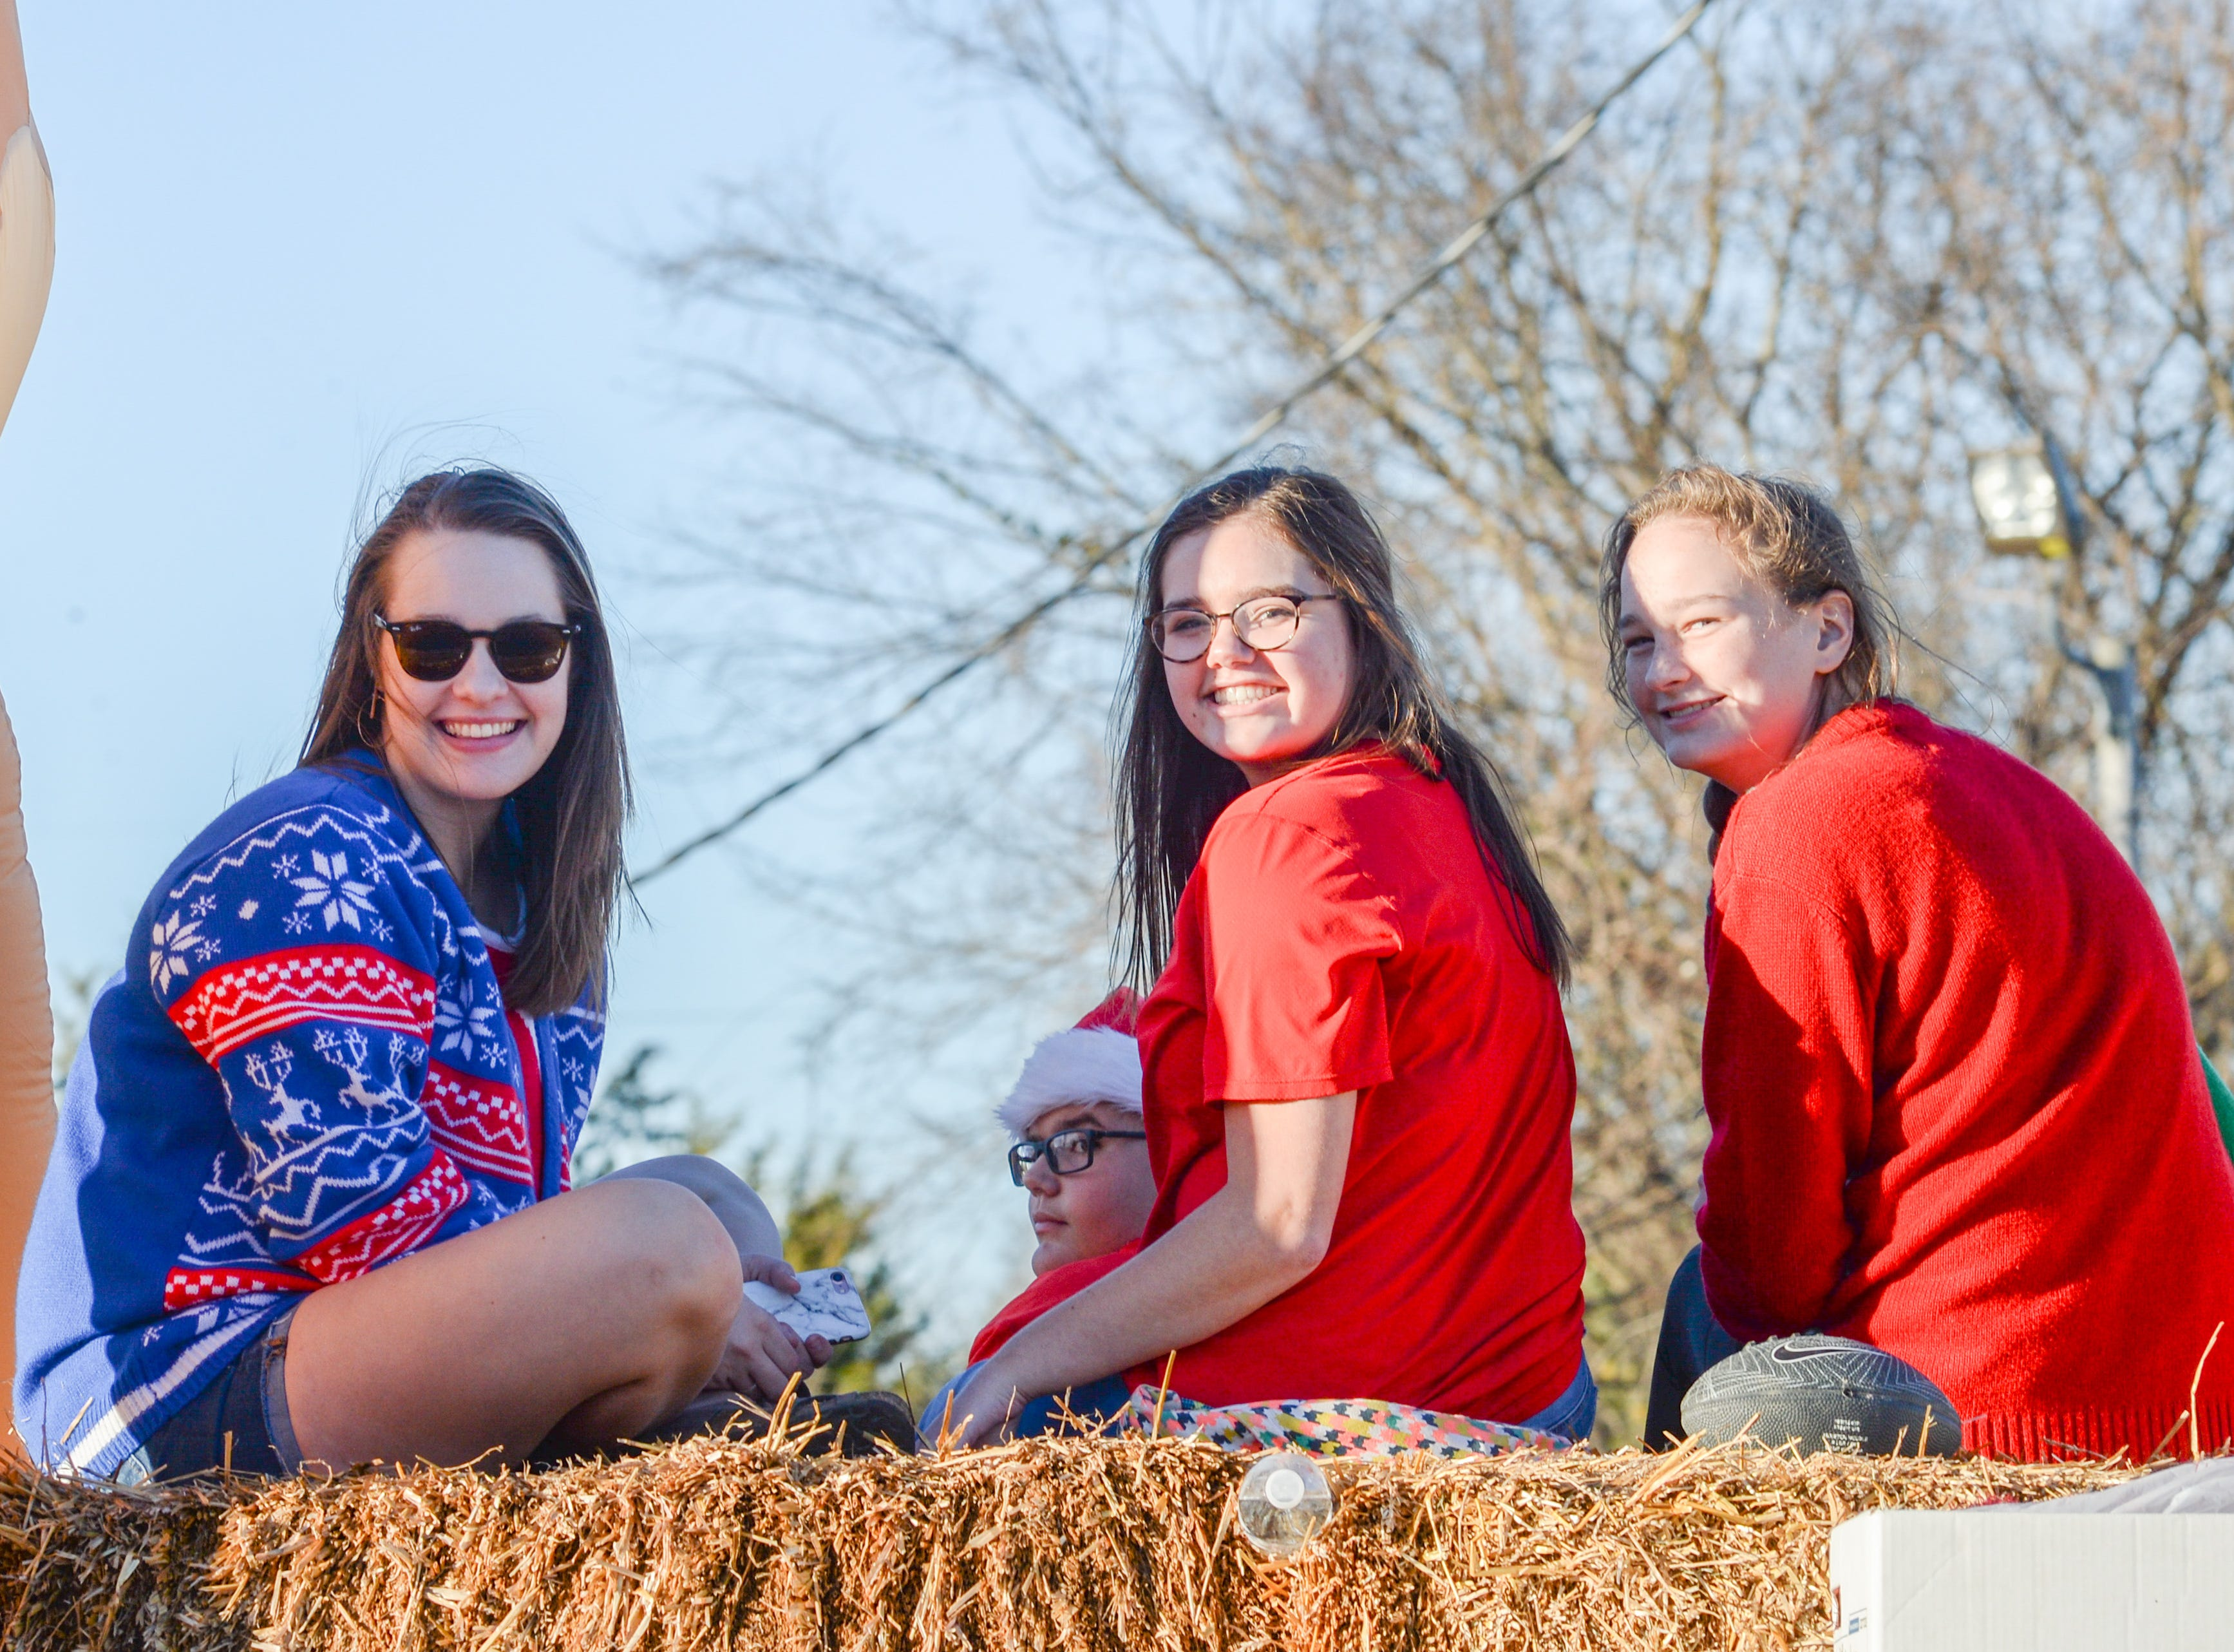 It was a beautiful day for the 2018 Hendersonville Christmas Parade on Sunday, Dec. 2.